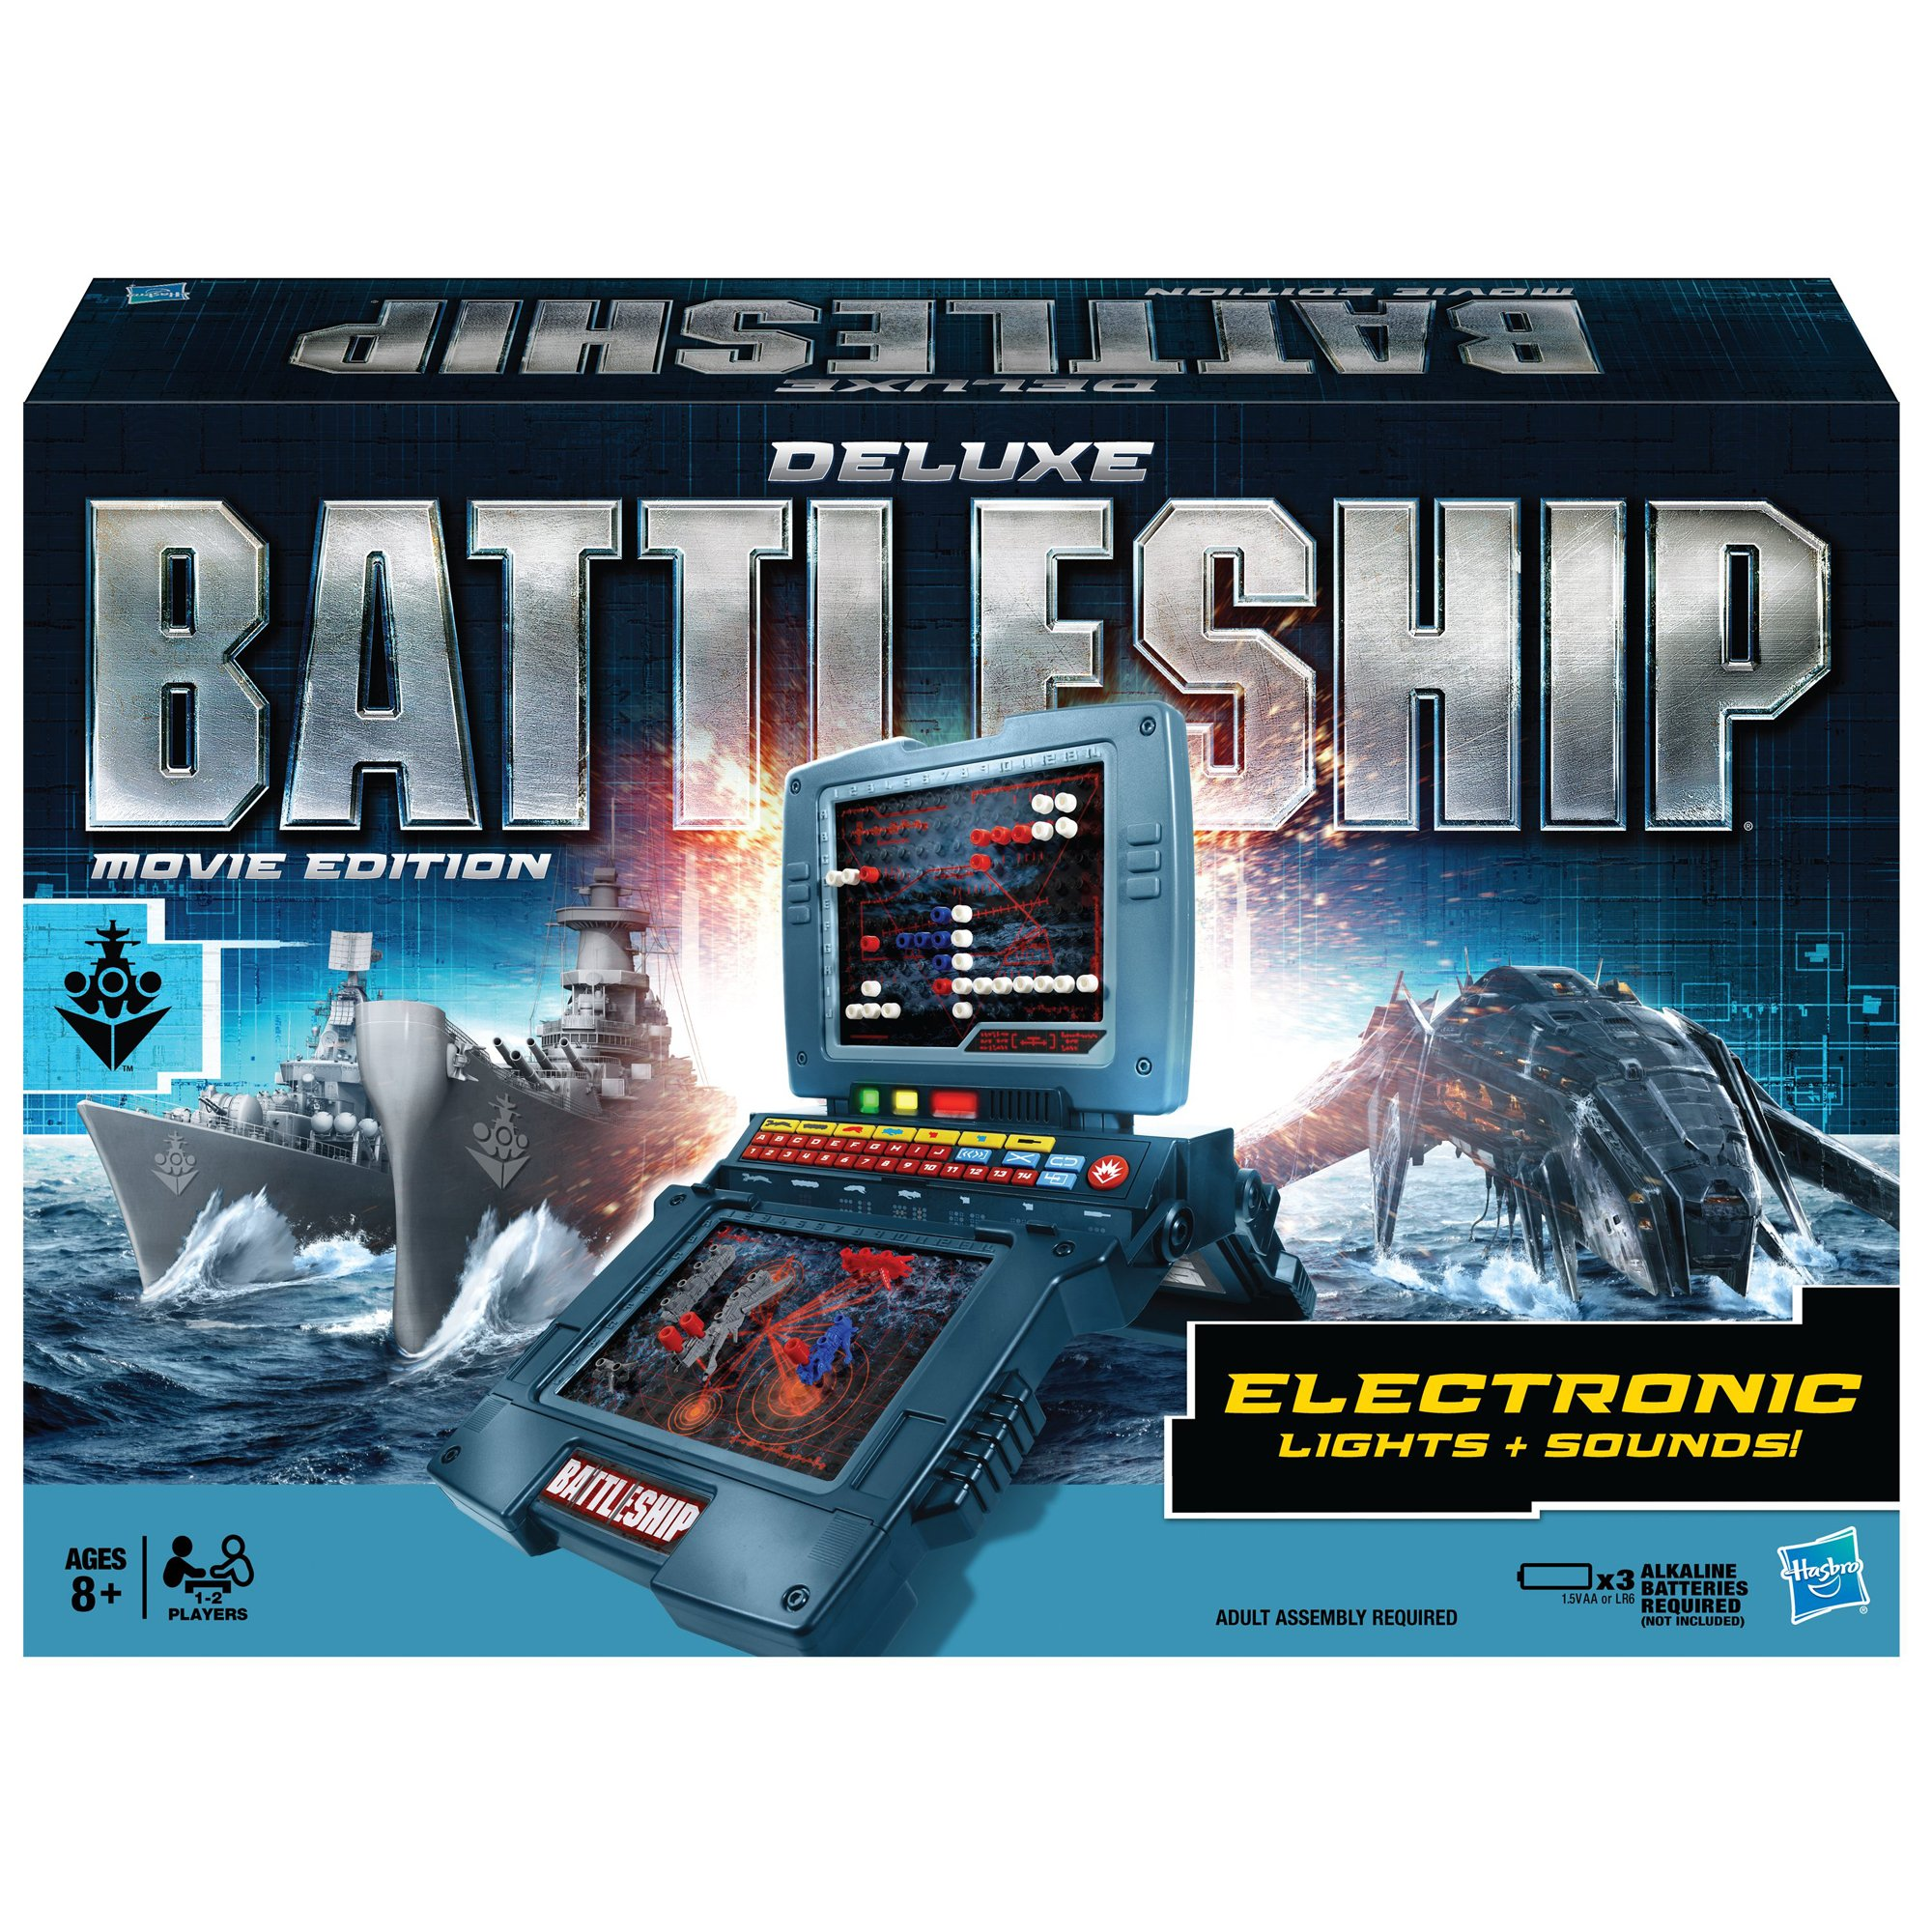 Deluxe Battleship Movie Edition by Hasbro